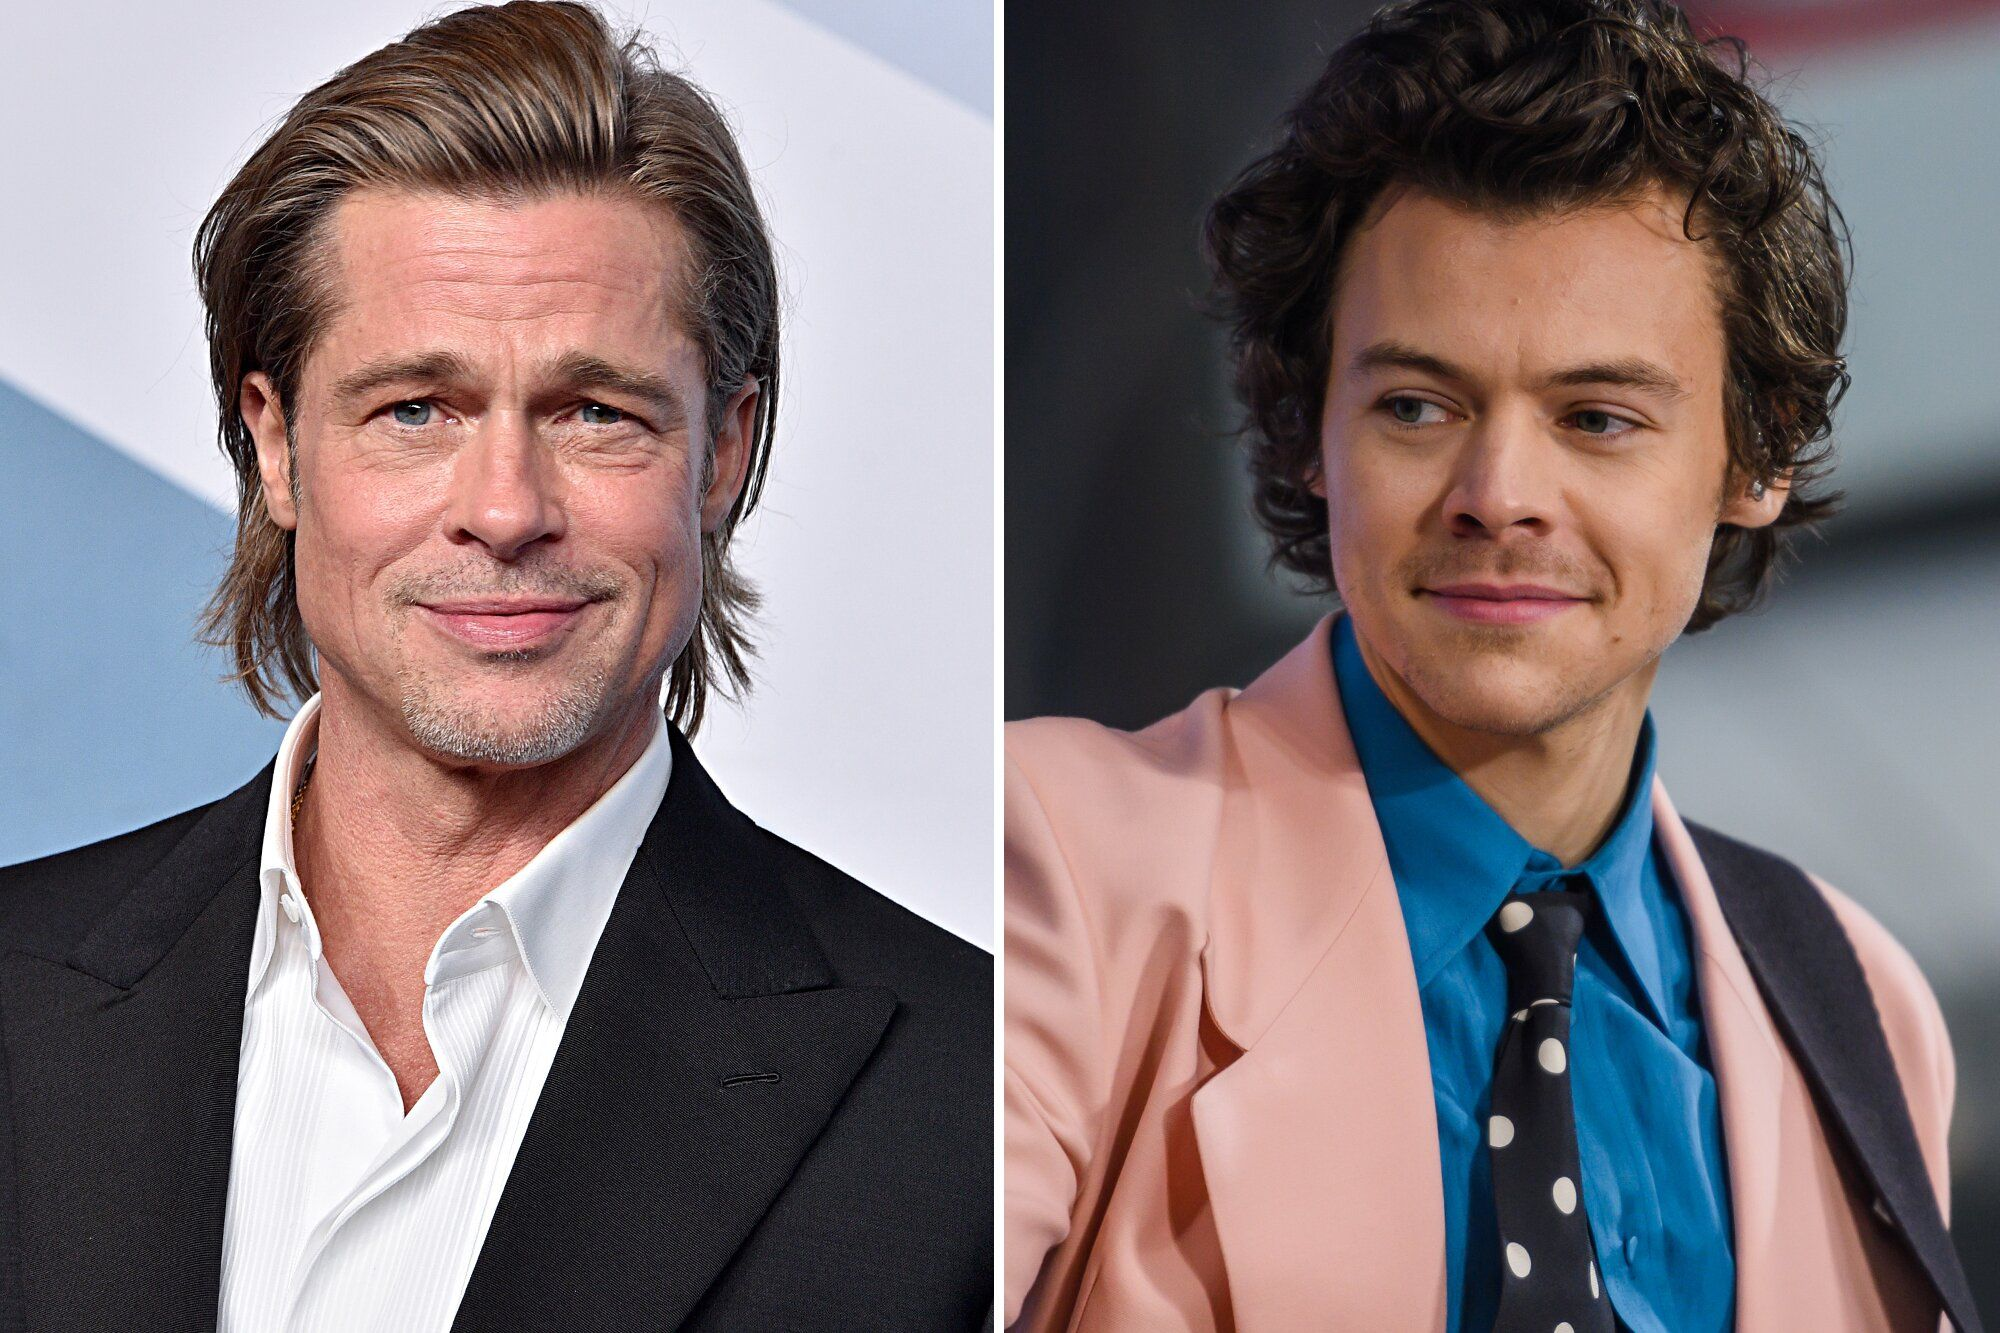 brad-pitt-and-harry-styles-movie-rumor-not-true-says-rep-and-fans-are-really-disappointed